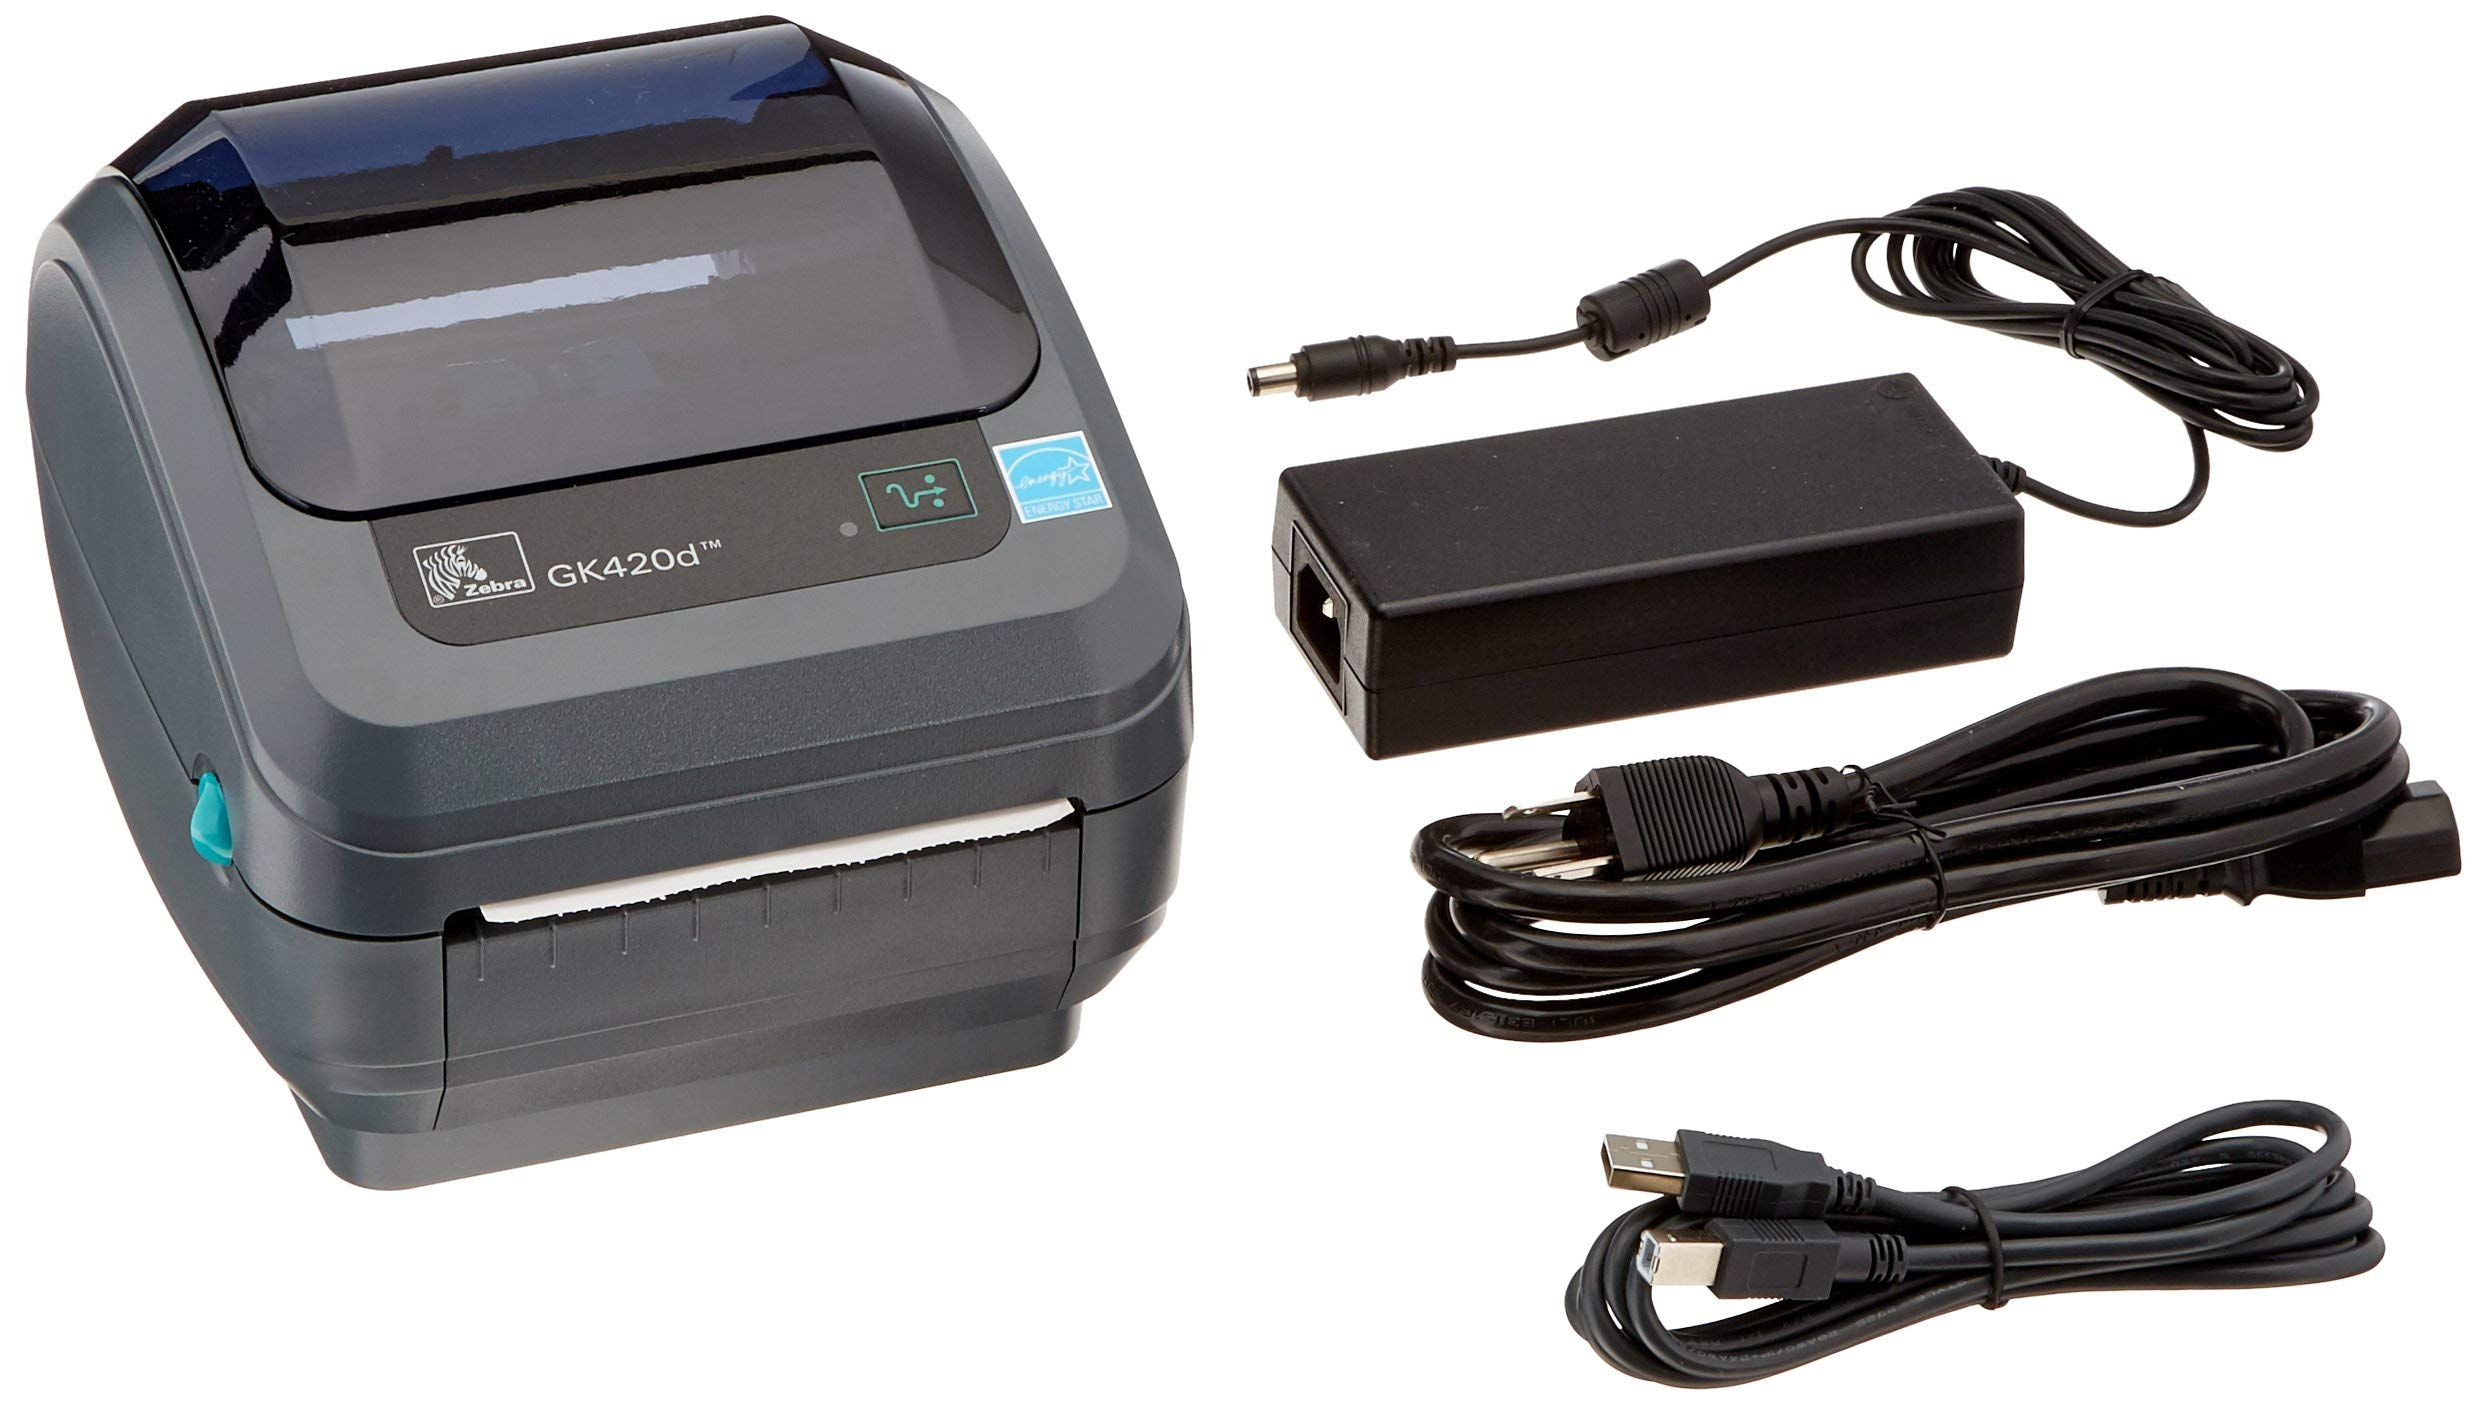 Zebra - GK420d Direct Thermal Desktop Printer for Labels, Receipts, Barcodes, Tags, and Wrist Bands - Print Width of 4 in - USB and Ethernet Port Connectivity (Renewed) by ZEBRA (Image #1)